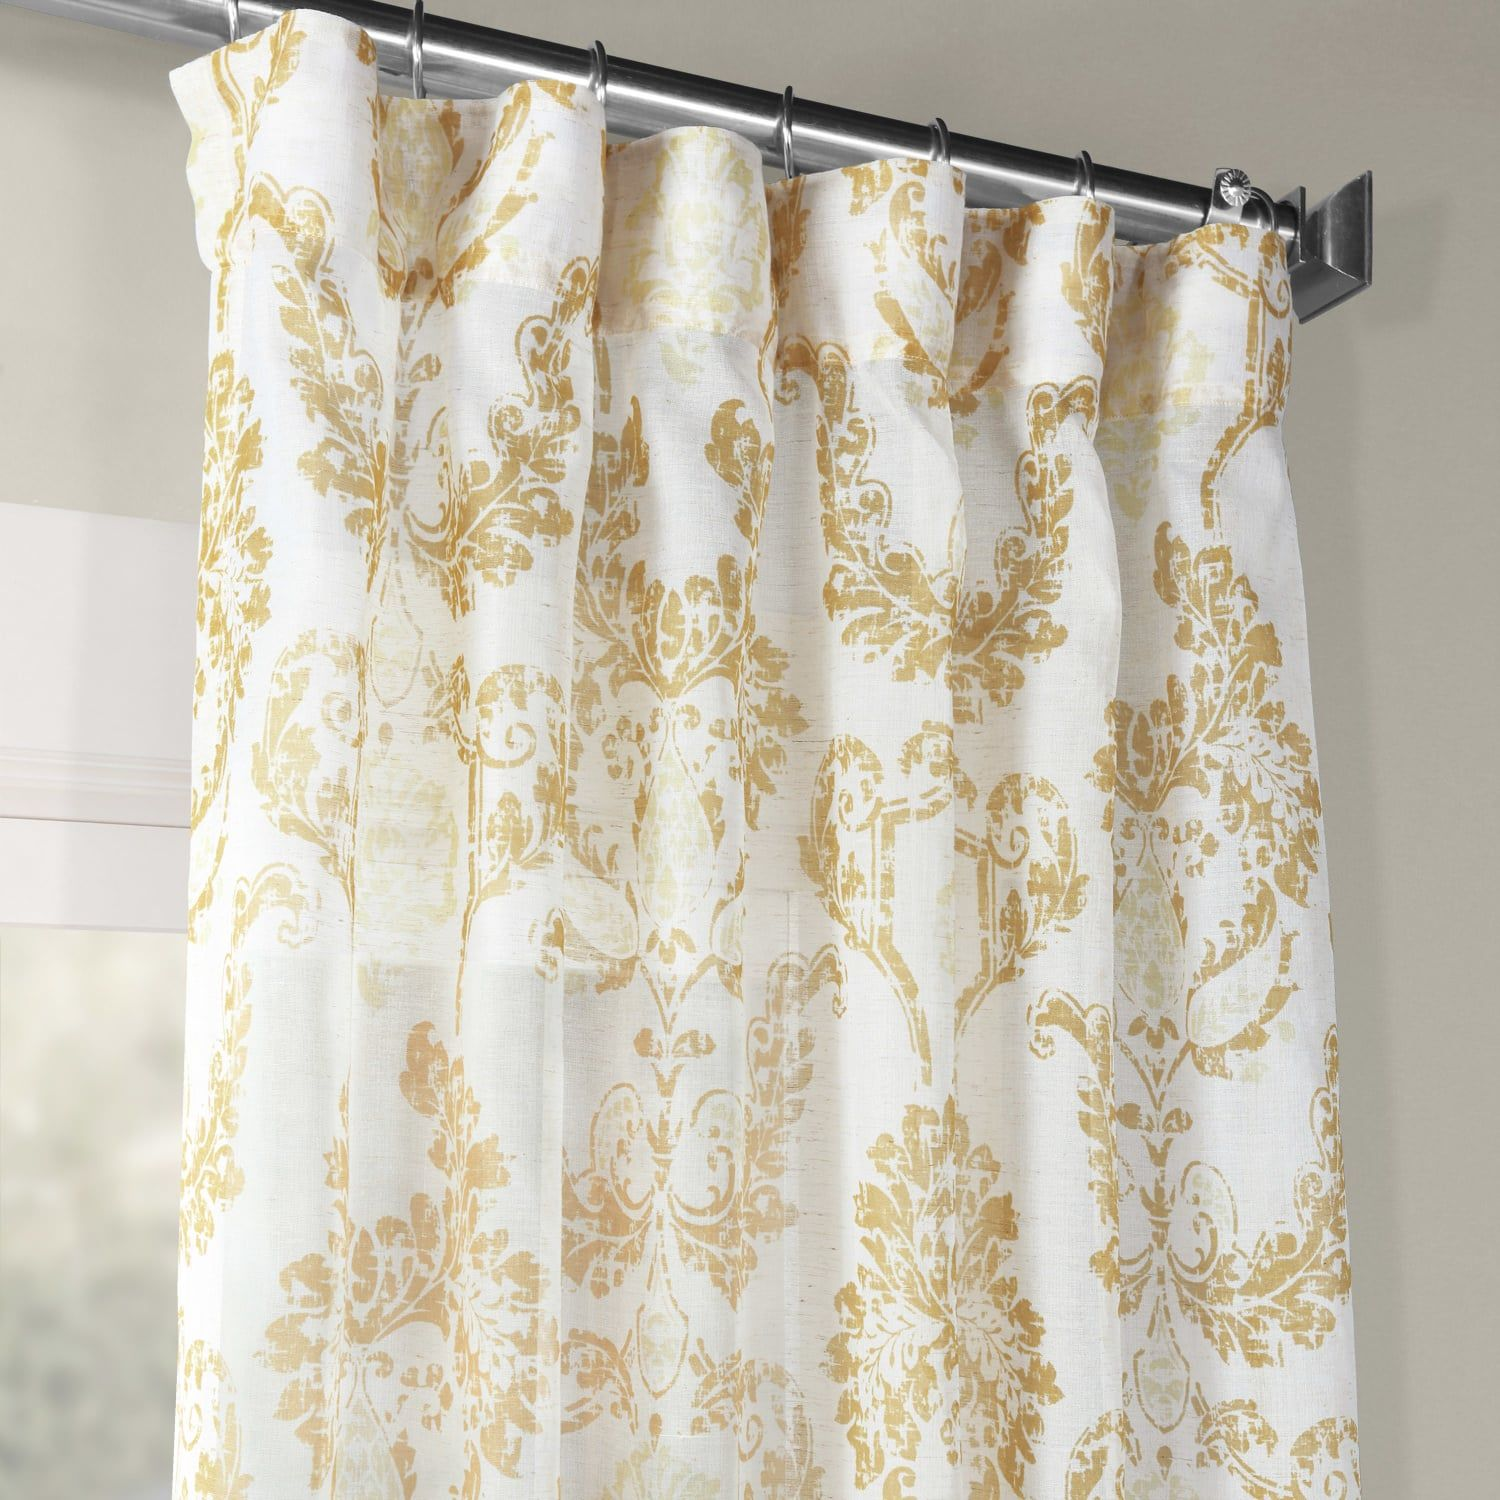 Terrace Gold Printed Faux Linen Sheer Curtain Sheer Linen Curtains Curtains Damask Curtains